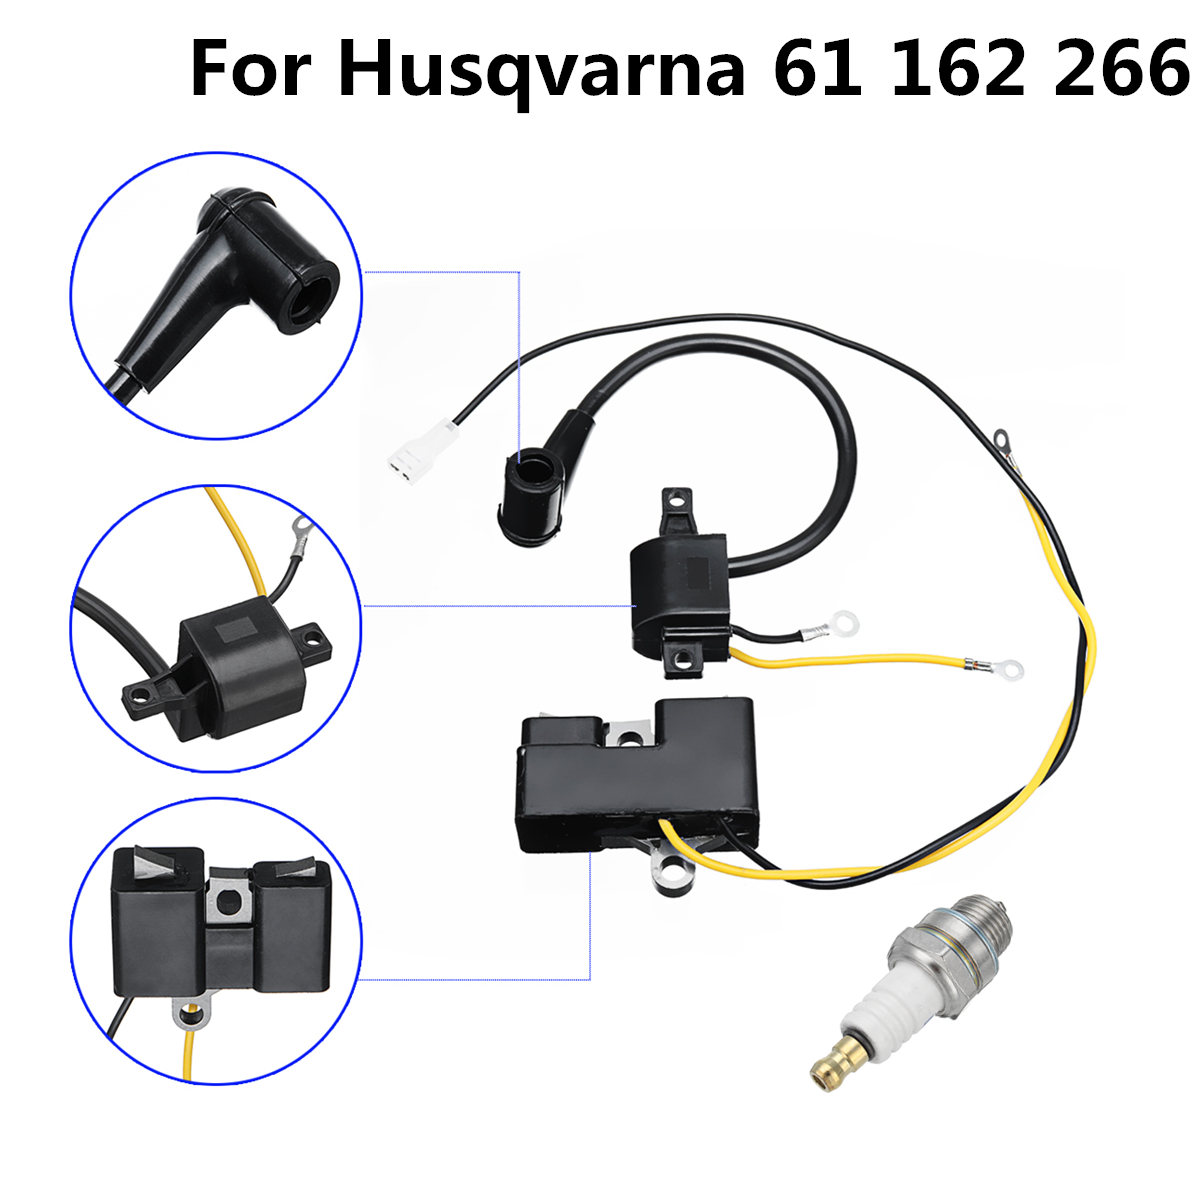 2 Parts Ignition Coil Spark Plug Set For Husqvarna 61 162 266 Jonsered 630 670 Chainsaw Old Type Ignition Coil Set